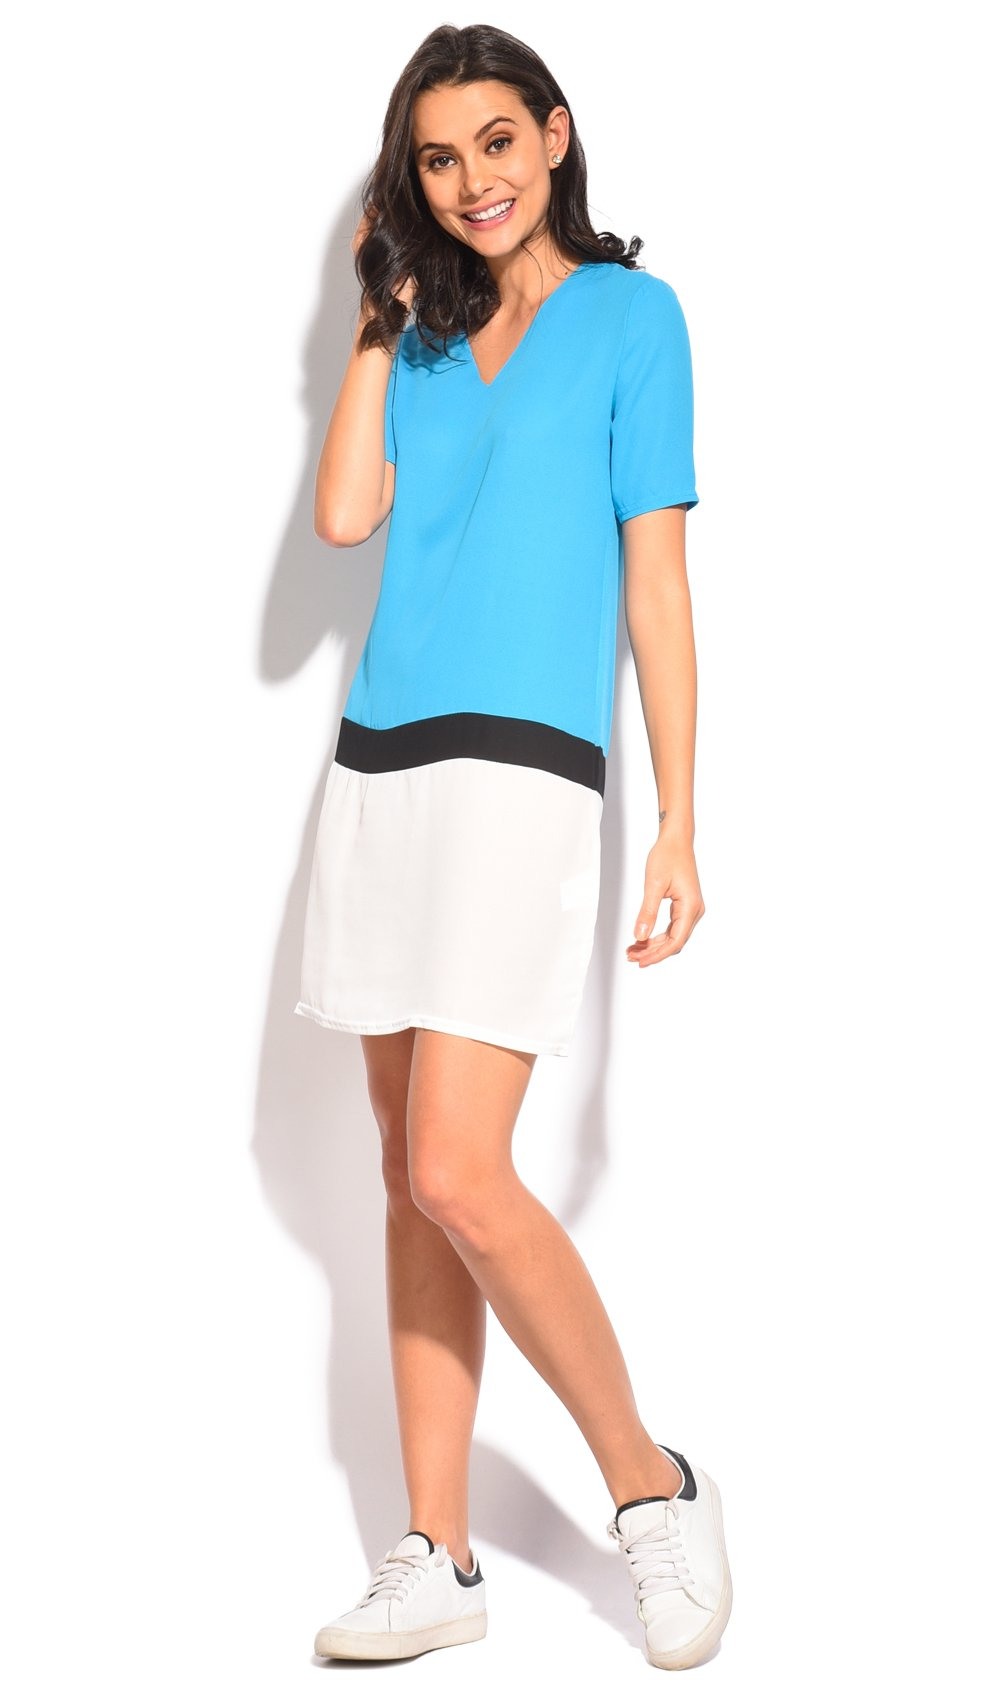 SHORT TRI-COLORS V-NECK DRESS